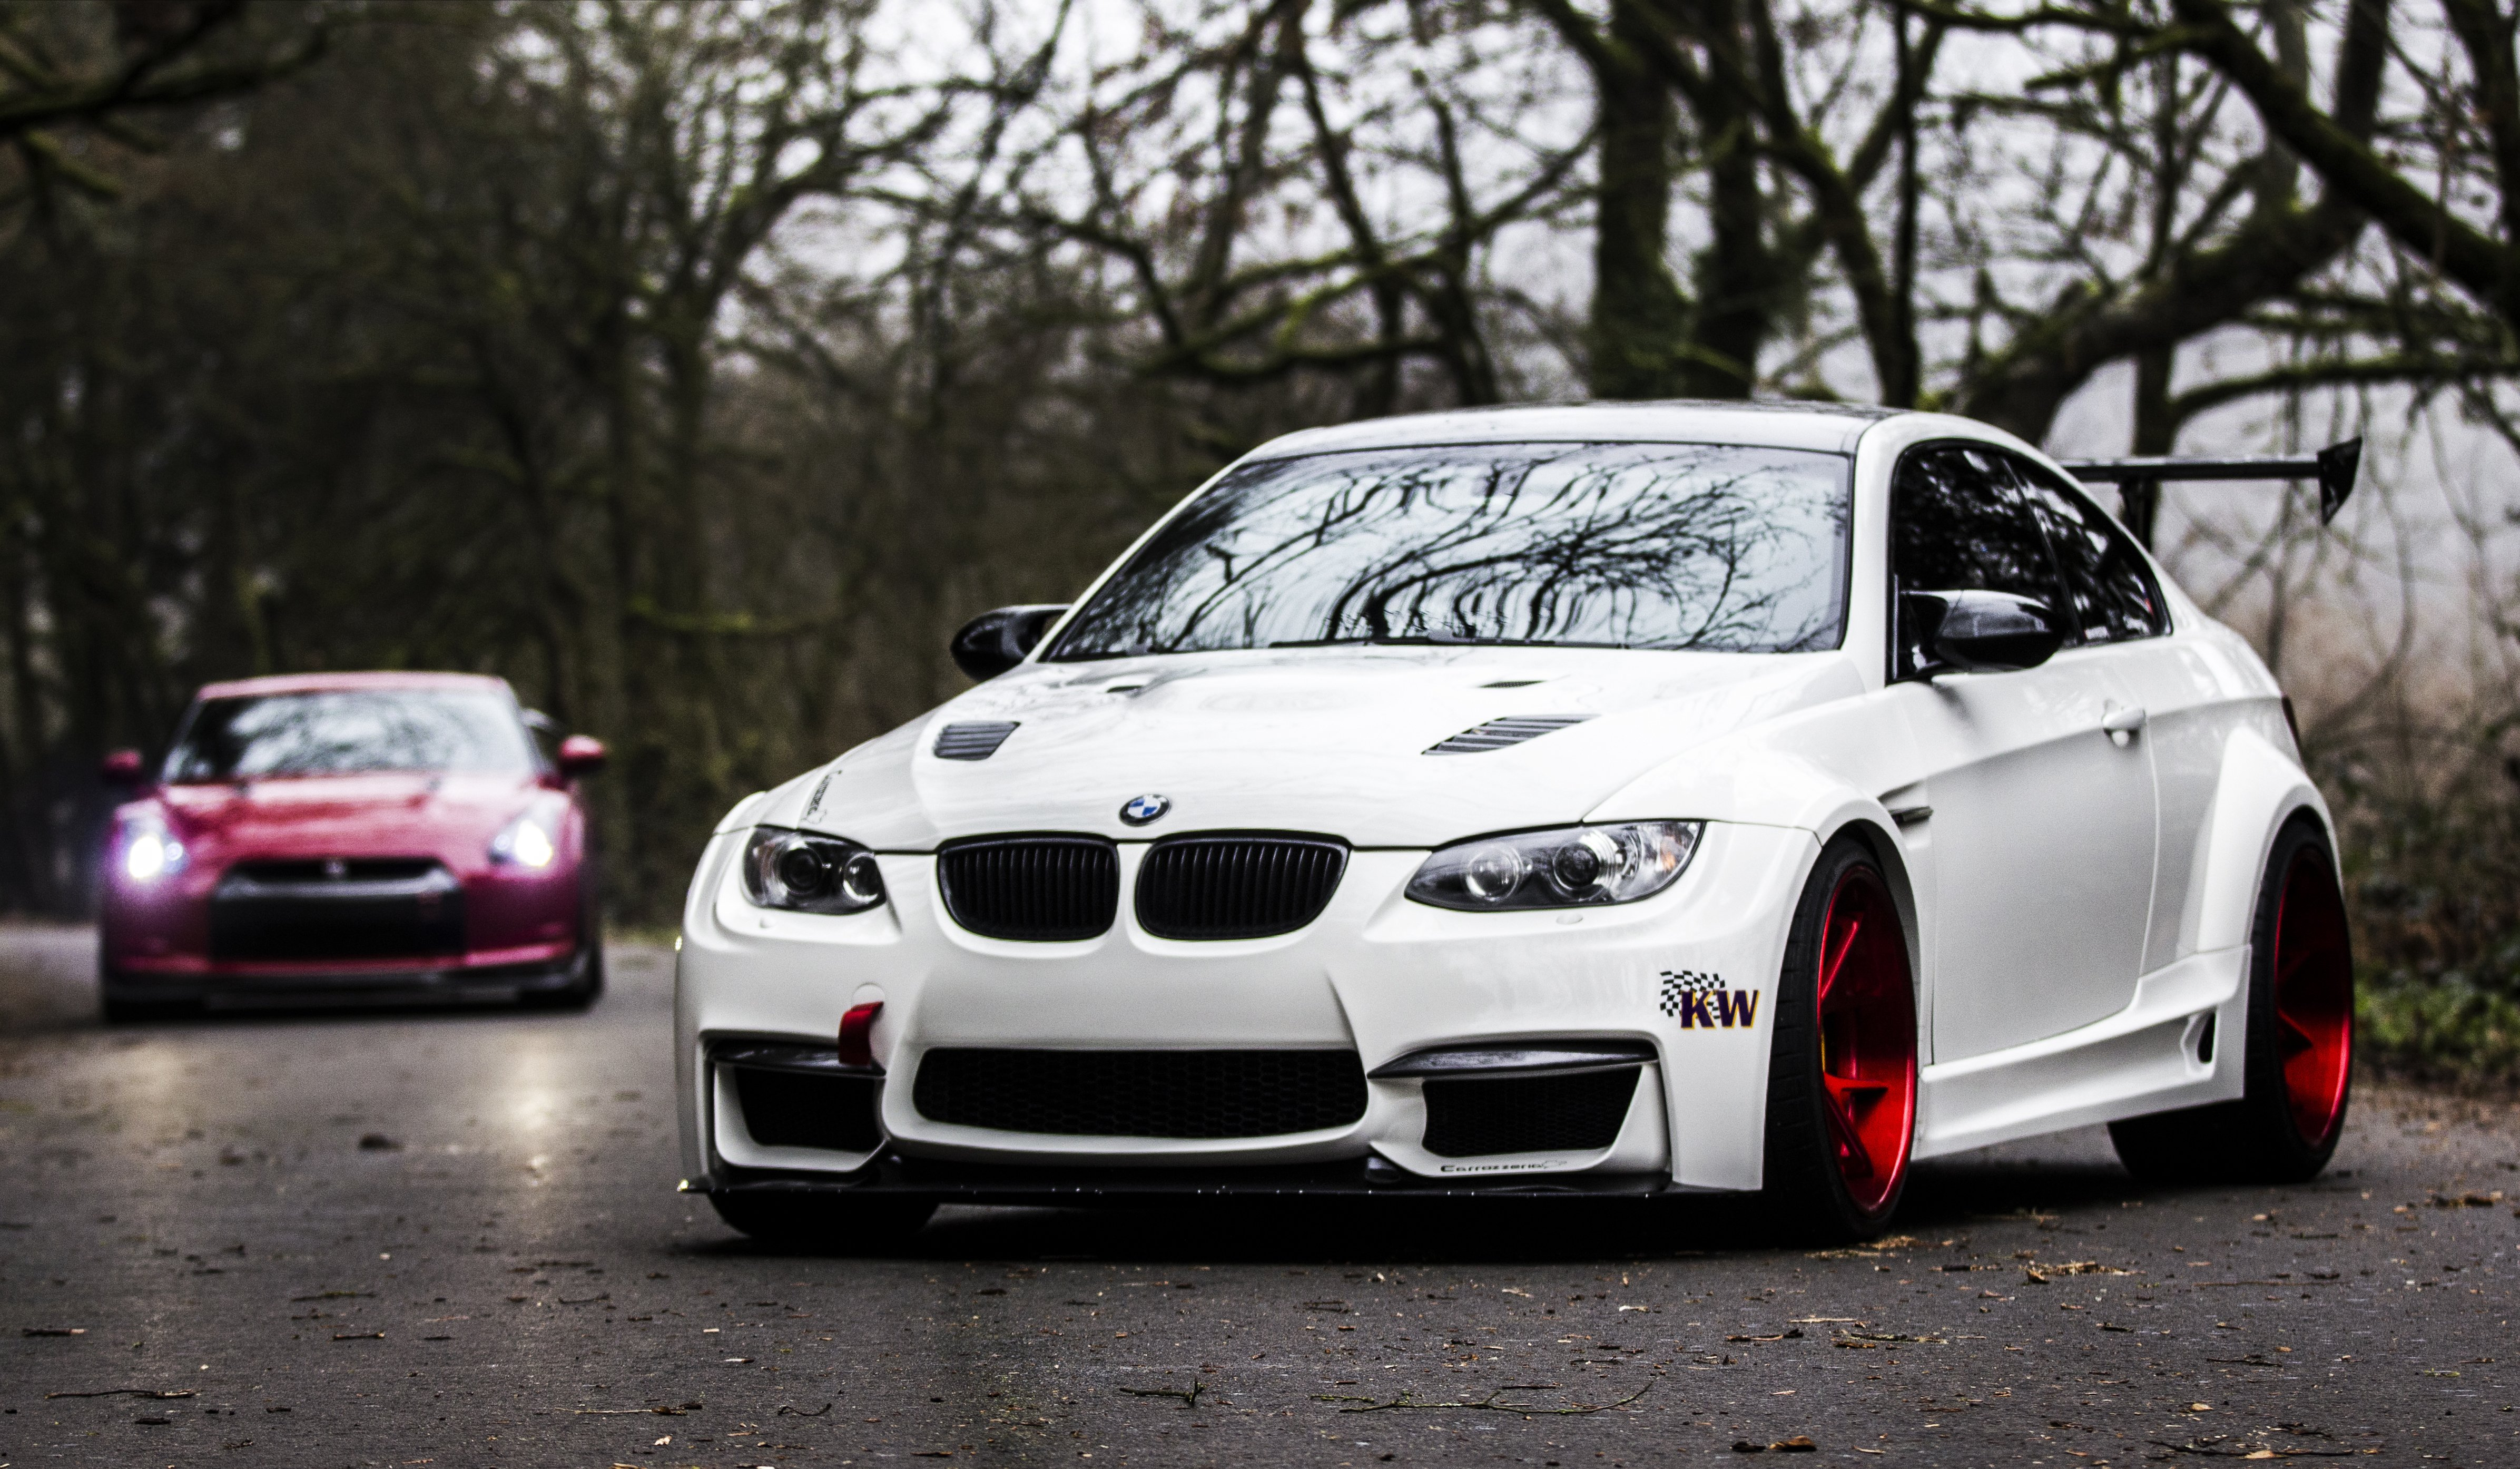 bmw e92 m3 white front cars tuning wallpaper 4784x2788. Black Bedroom Furniture Sets. Home Design Ideas